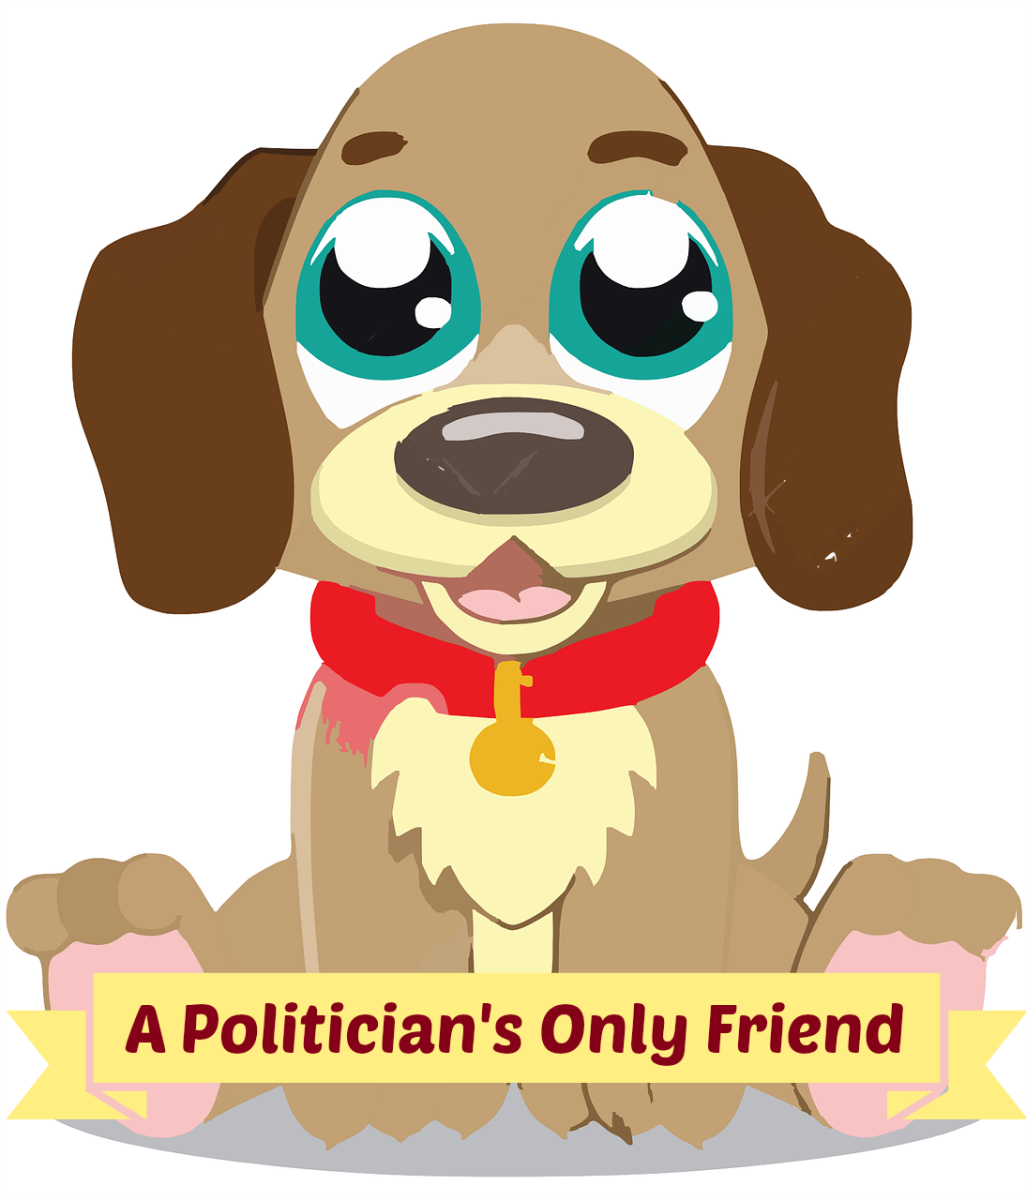 Is a dog the only true friend a politician has?